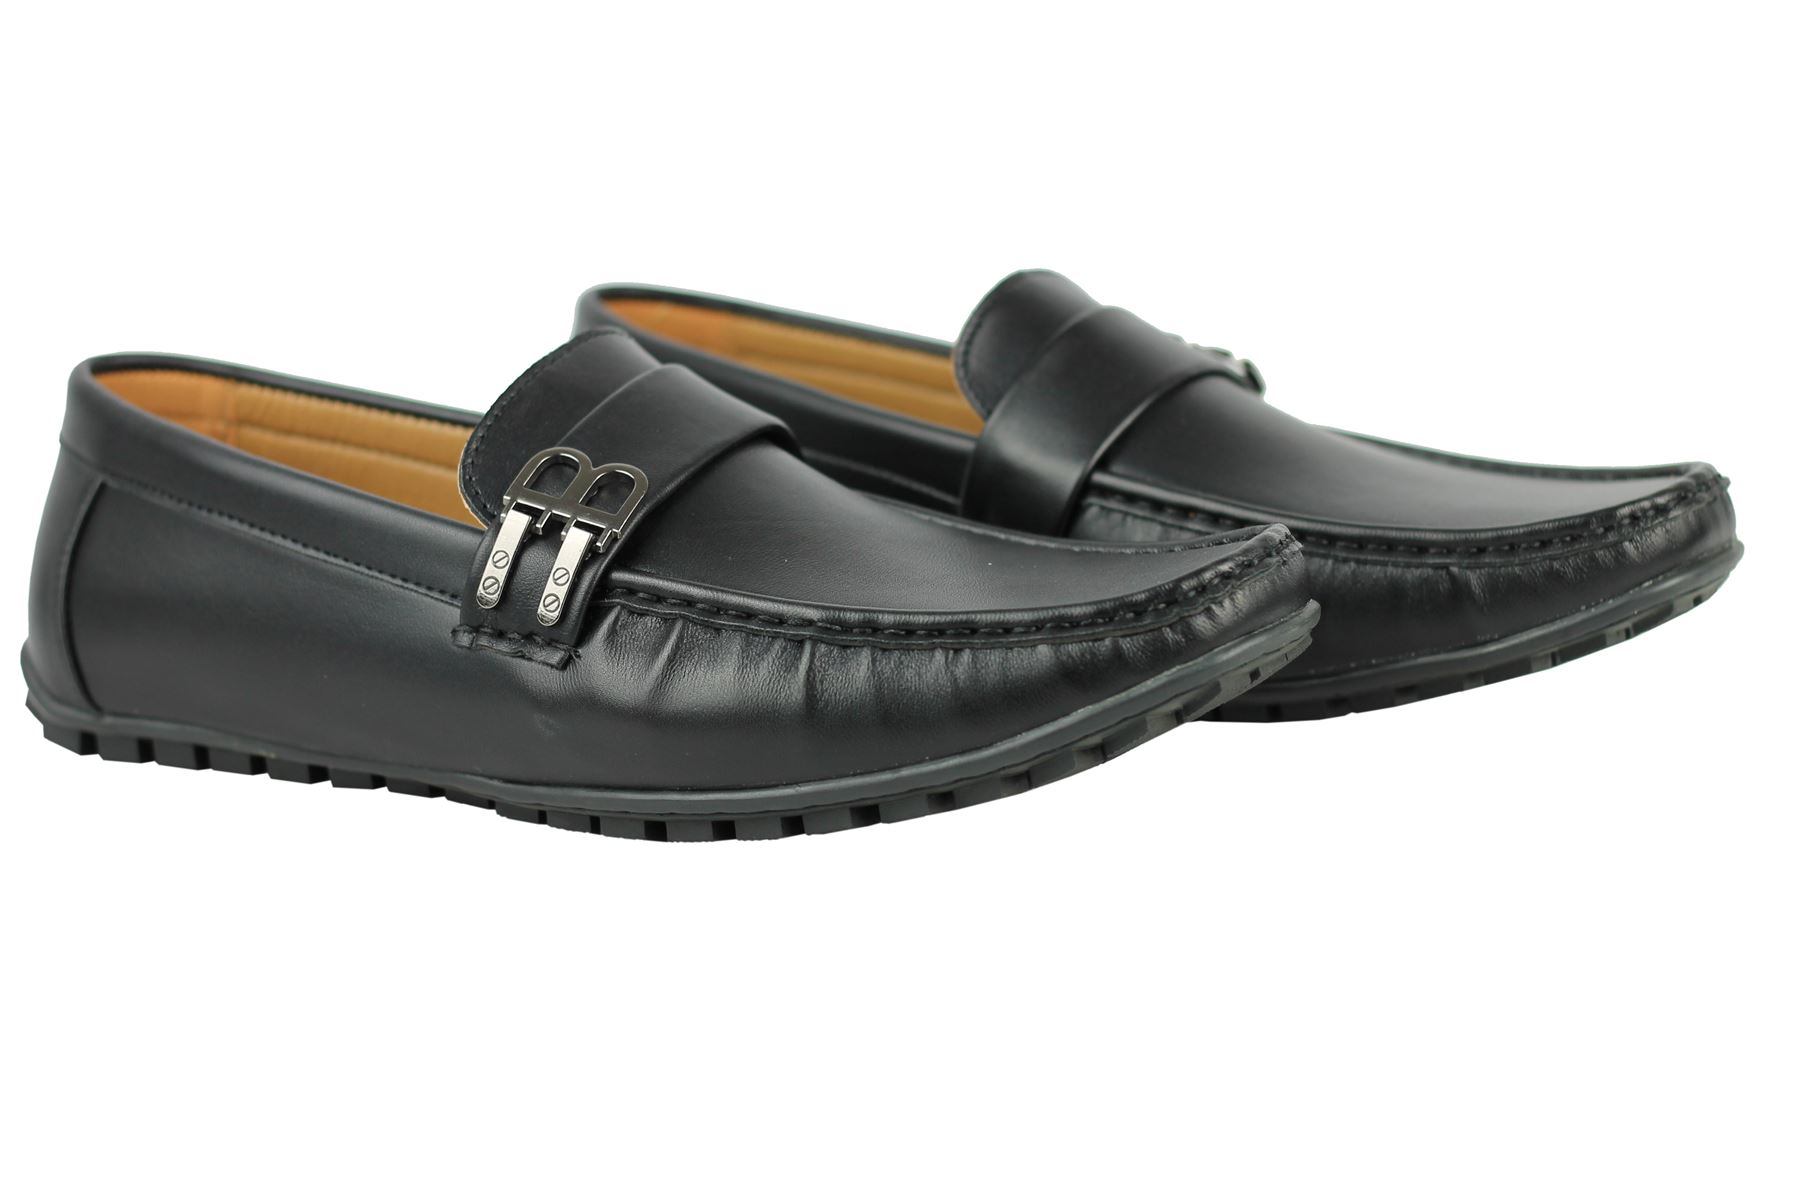 mens faux leather b buckle smart casual shoes loafers ebay